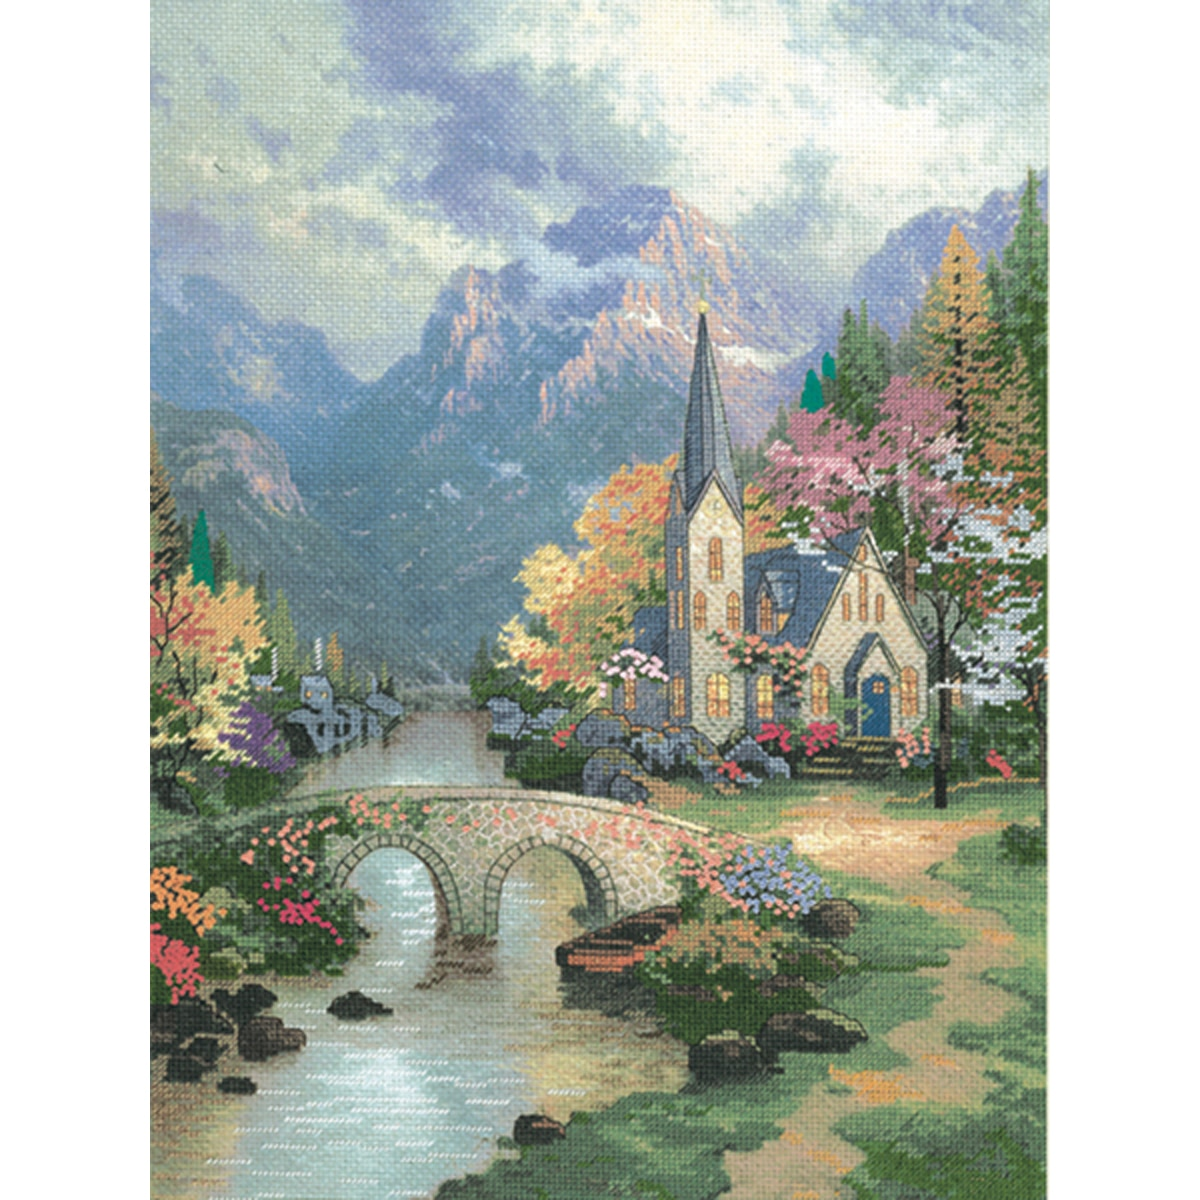 thomas kinkade cross stitch